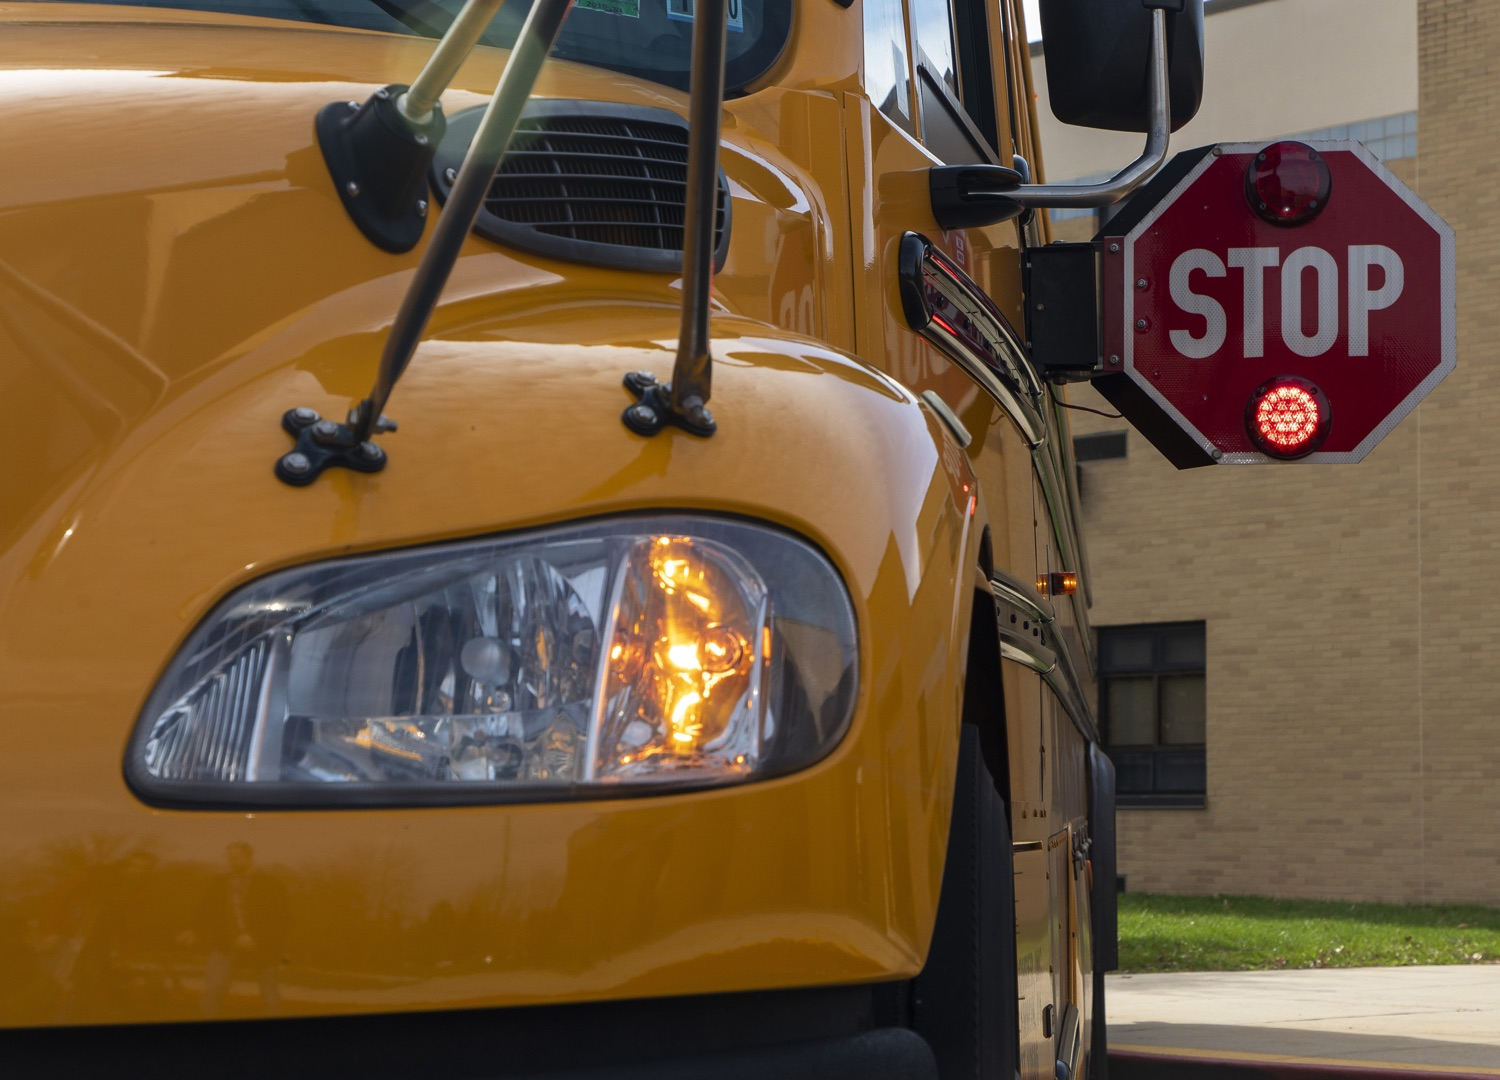 "<a href=""http://filesource.abacast.com/commonwealthofpa/photo/17458_pdot_safeStop_0002.jpg"" target=""_blank"">⇣ Download Photo<br></a>Wolf Administration Stresses School Bus Safety, Announces Results of Enforcement Initiative"